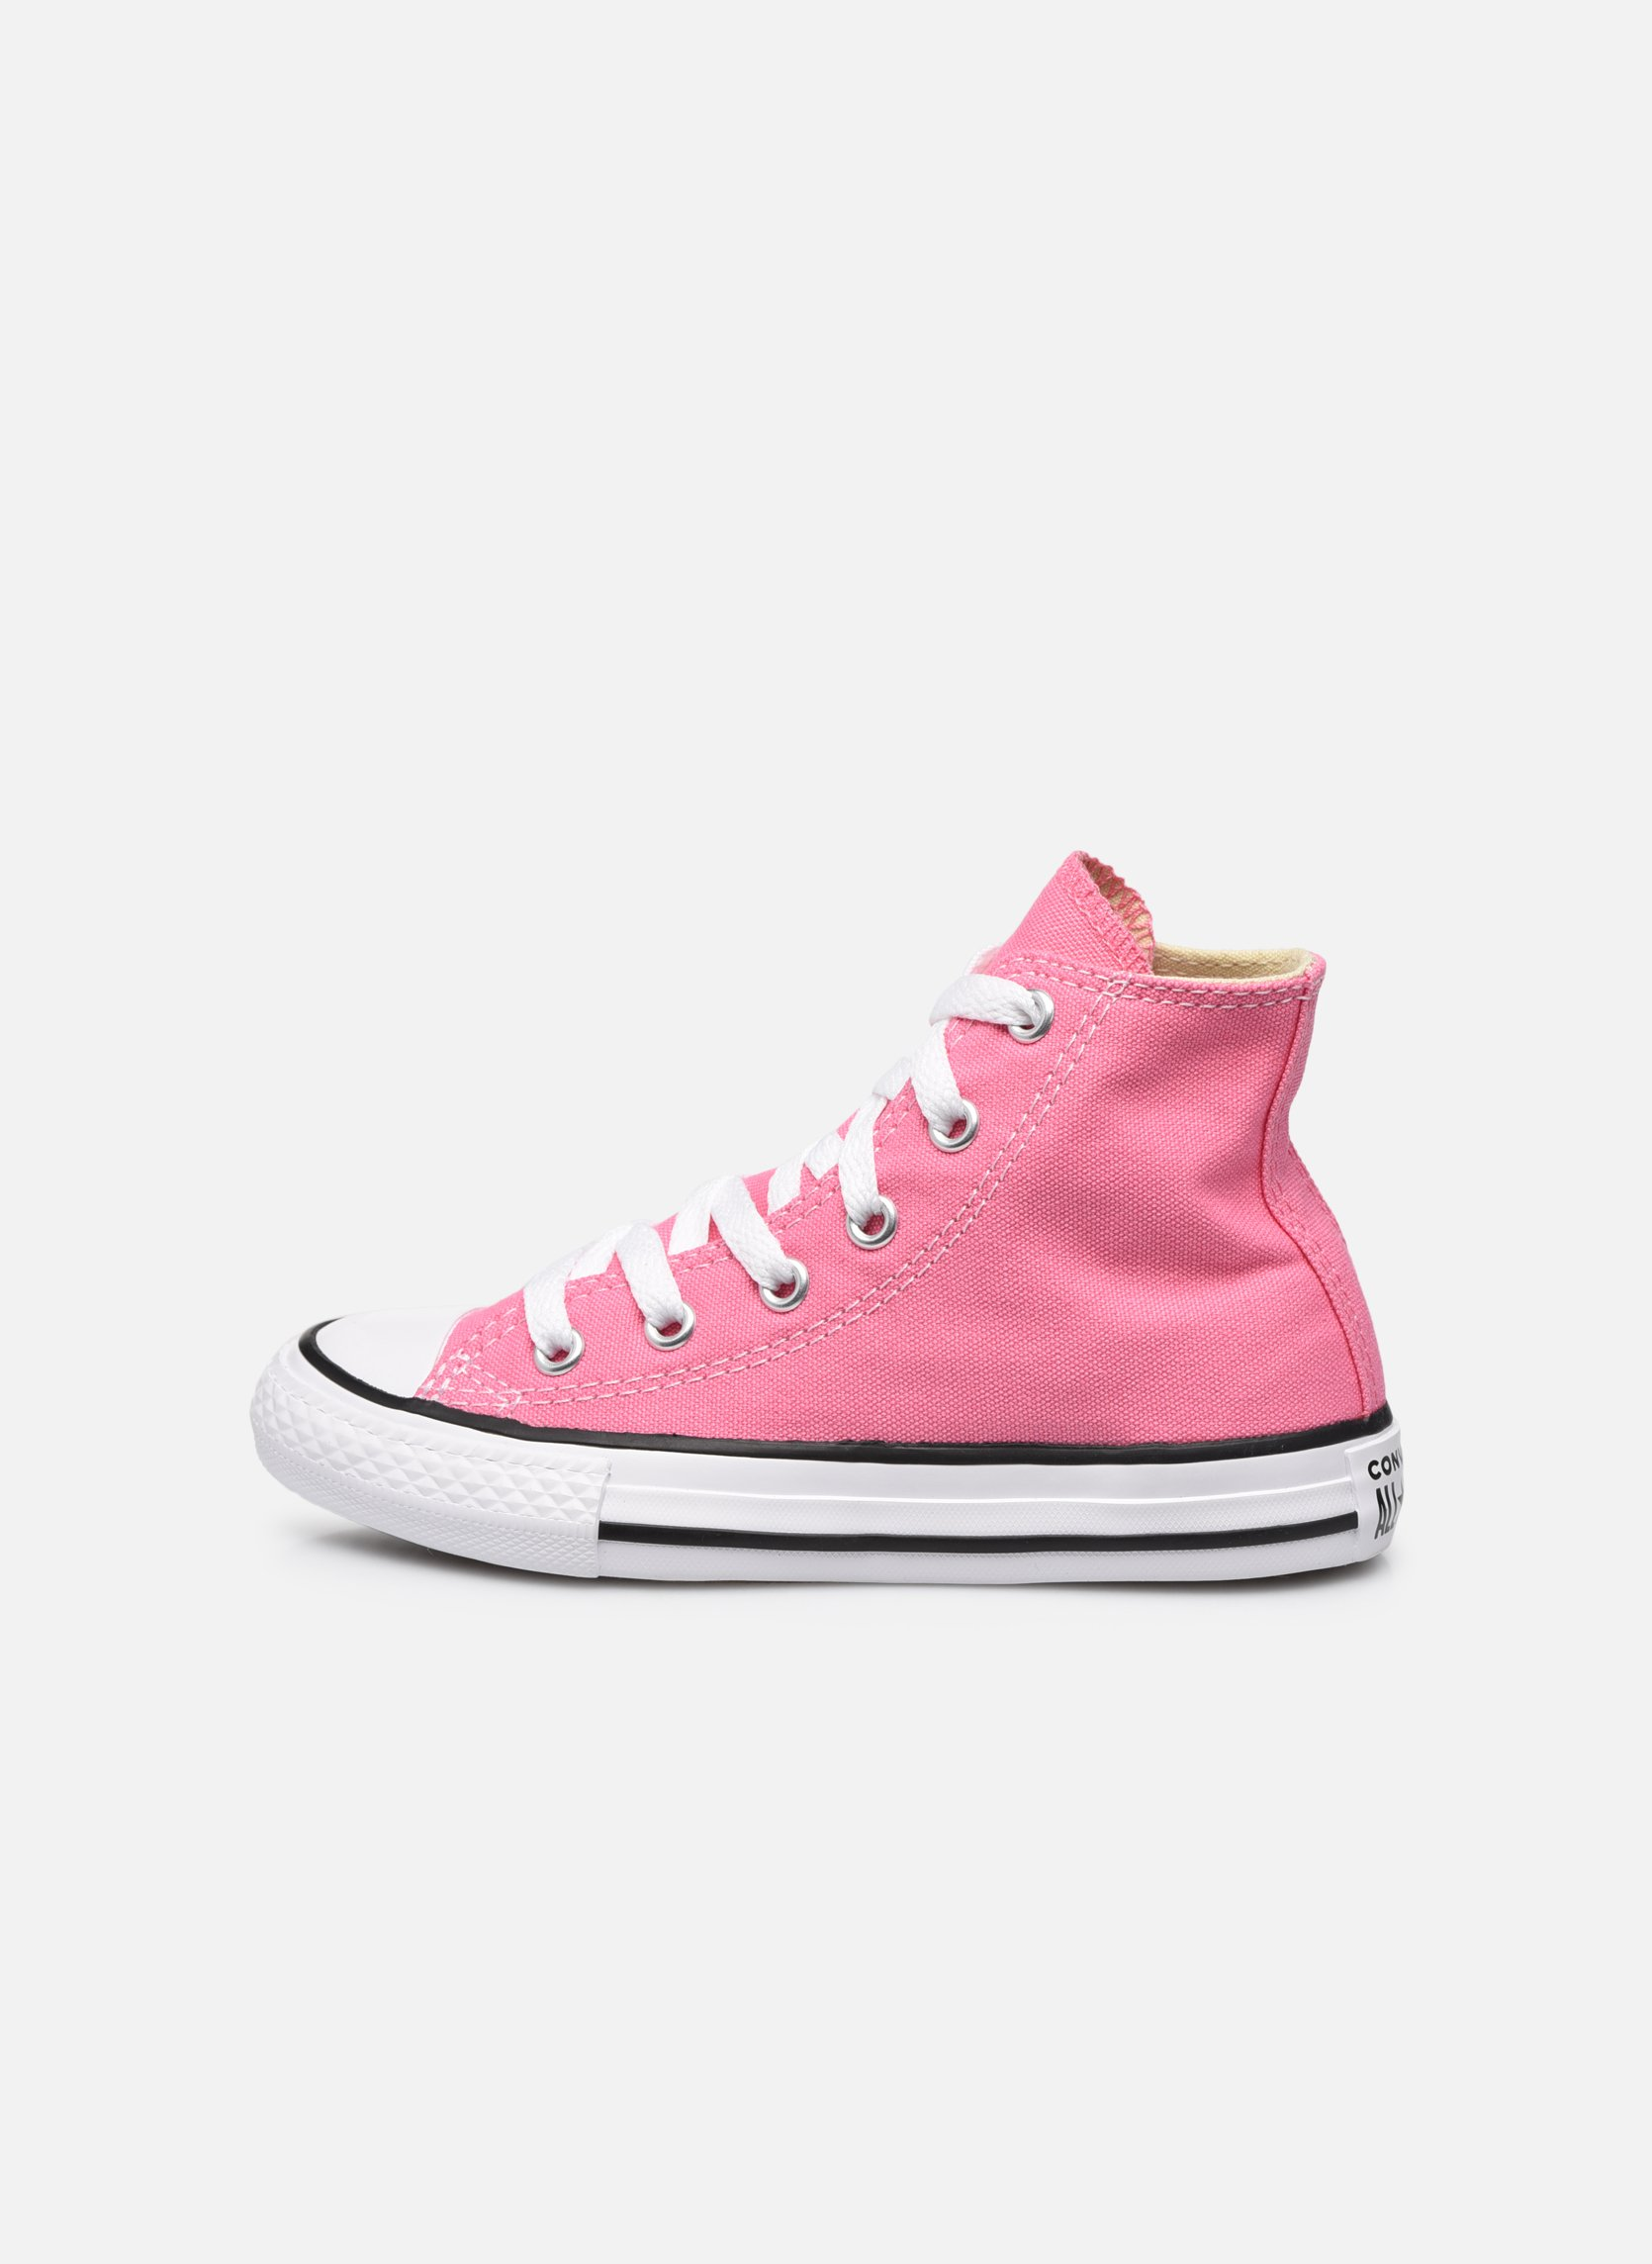 Chuck Taylor All Star Core Hi Pink